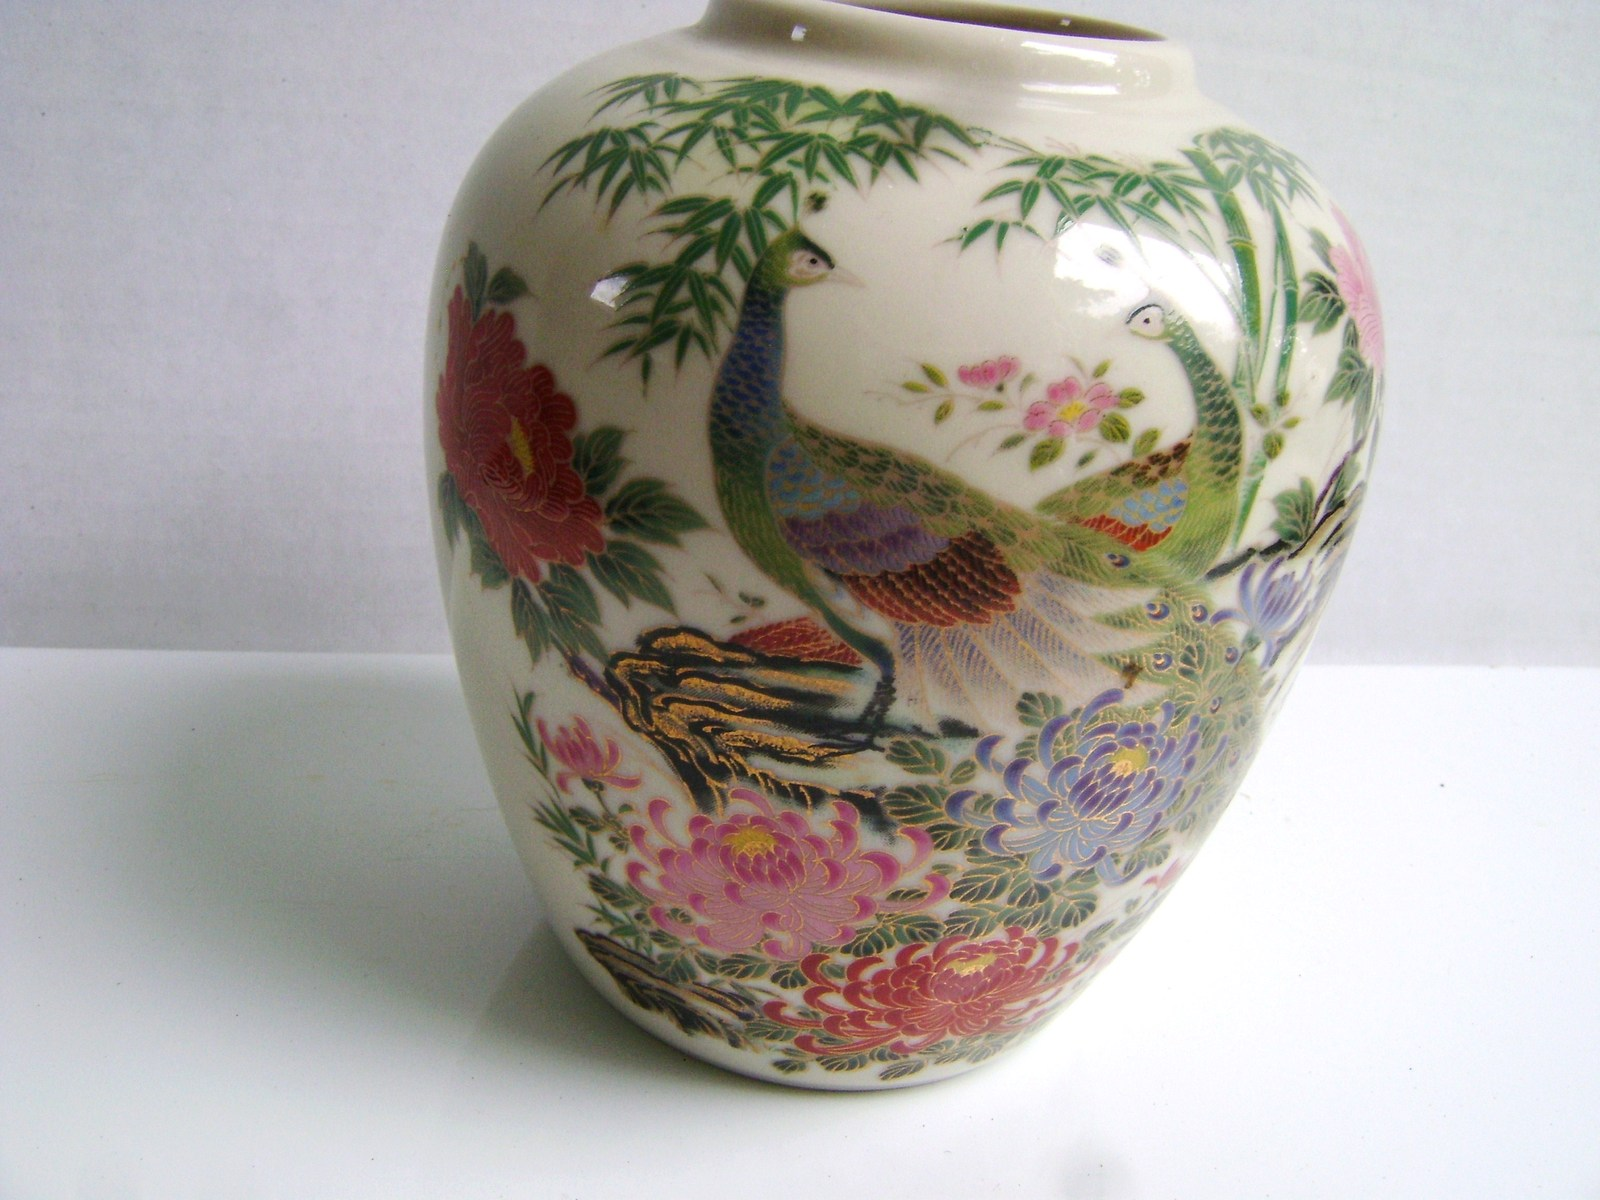 Primary image for Shibata Peacock Ginger Jar